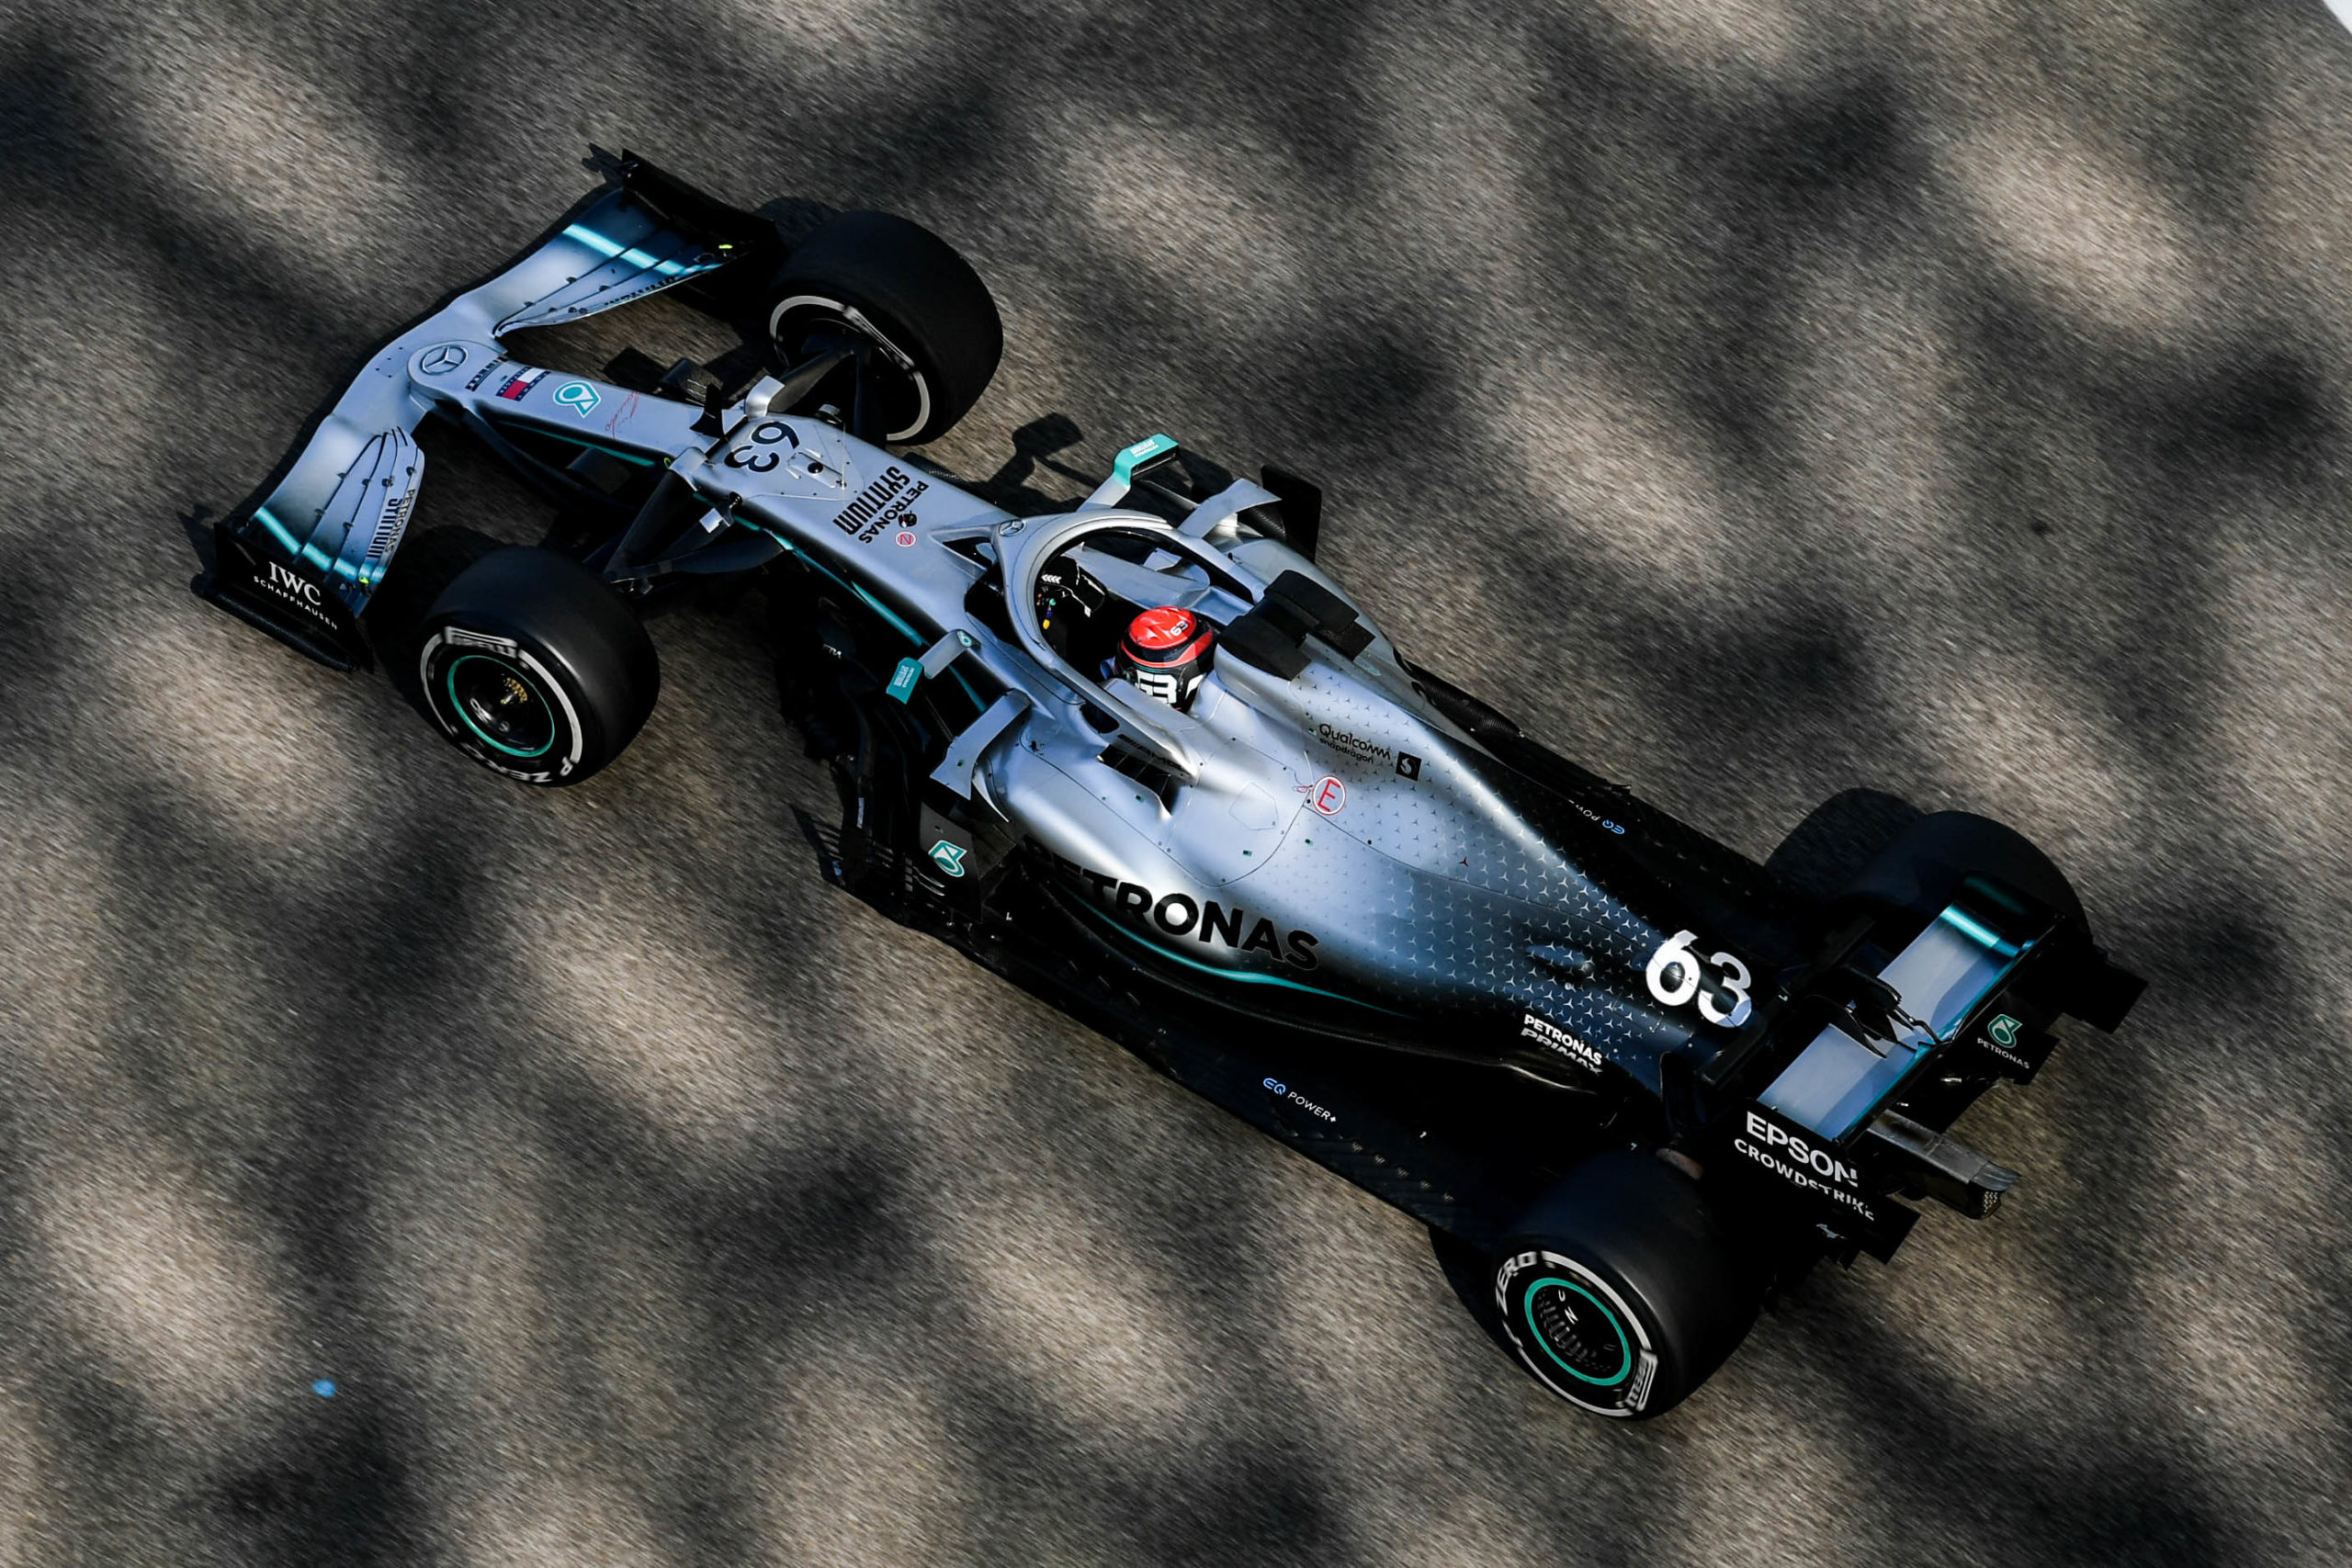 F1 teams reject proposed 2020 Pirelli tyre